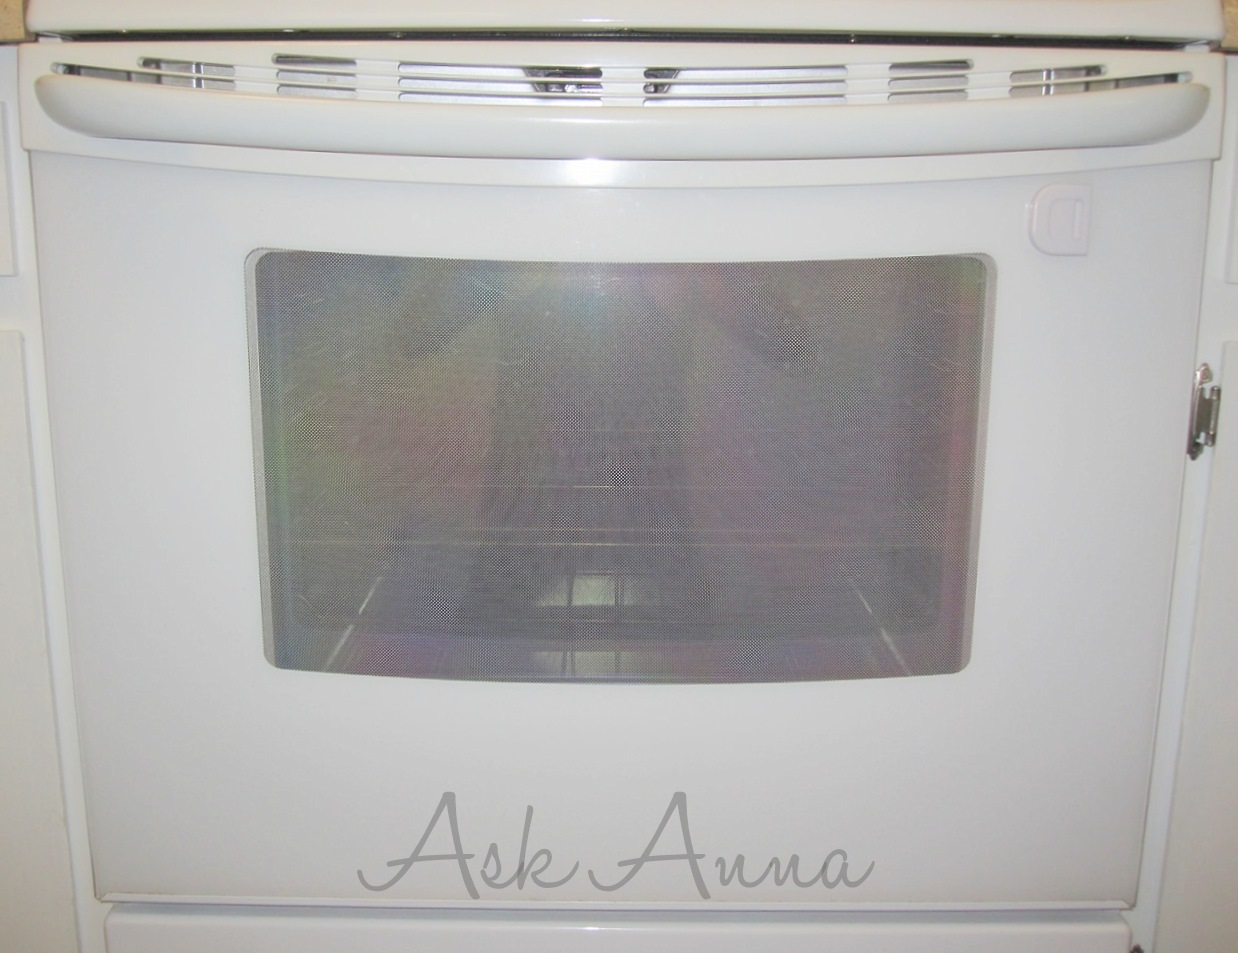 To clean an oven ask anna how to clean an oven ask anna planetlyrics Choice Image